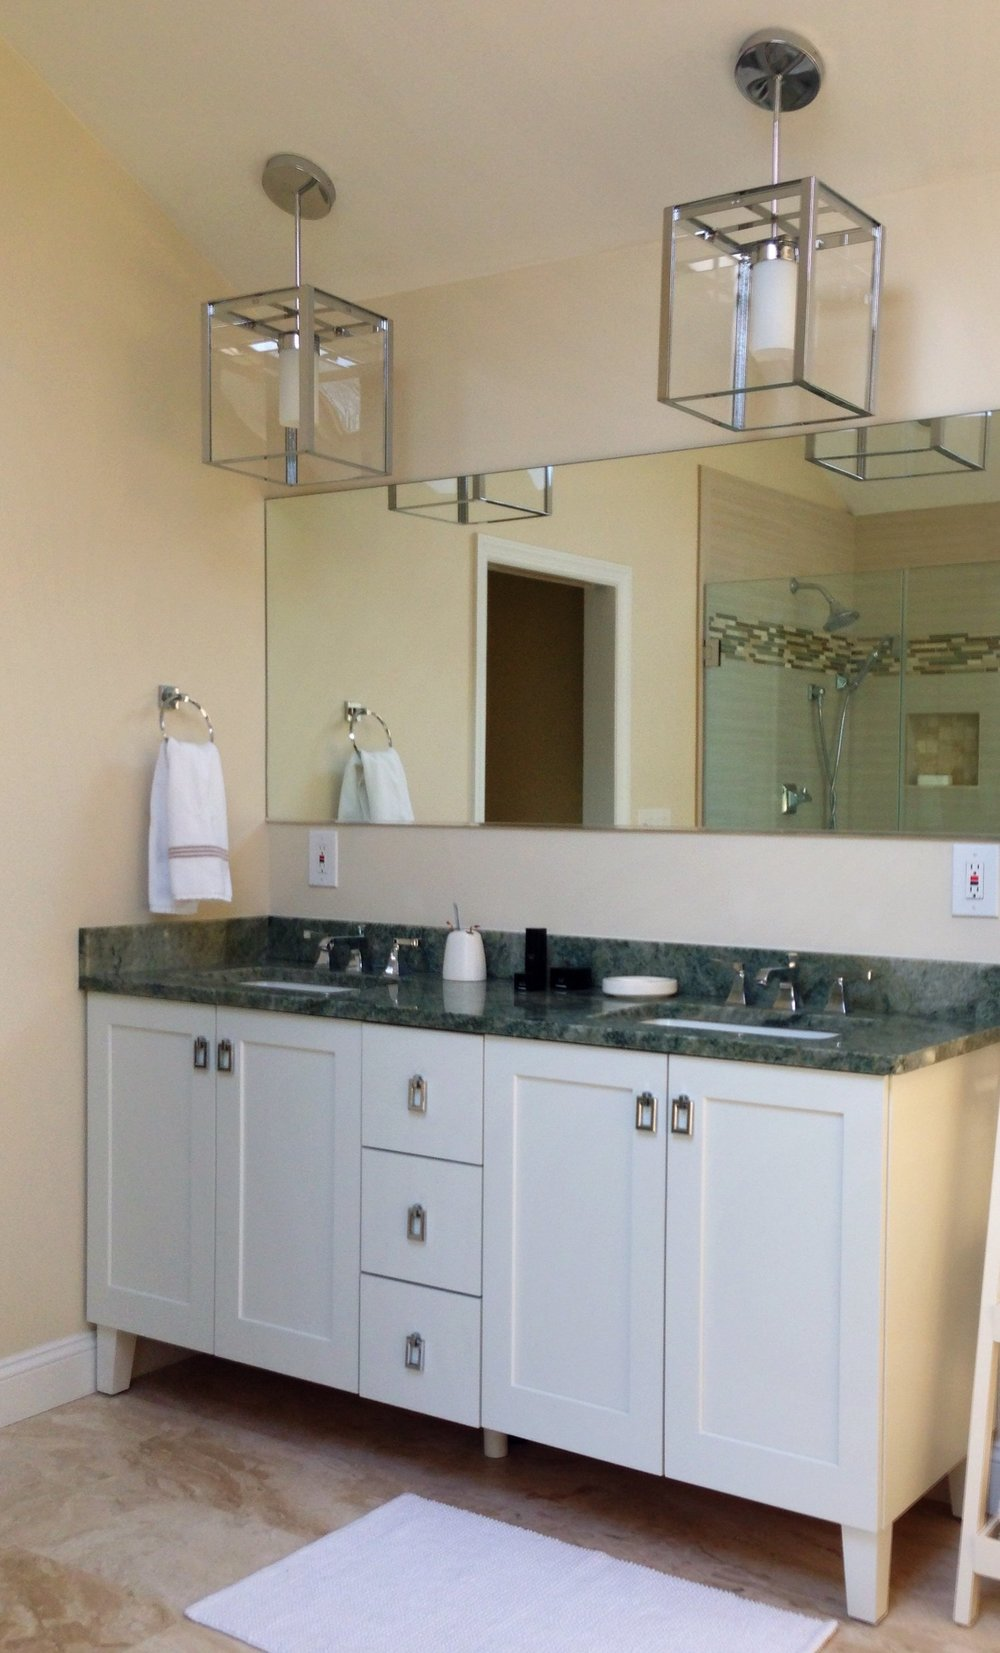 Commack / Smithtown newly designed and constructed Master Bathroom